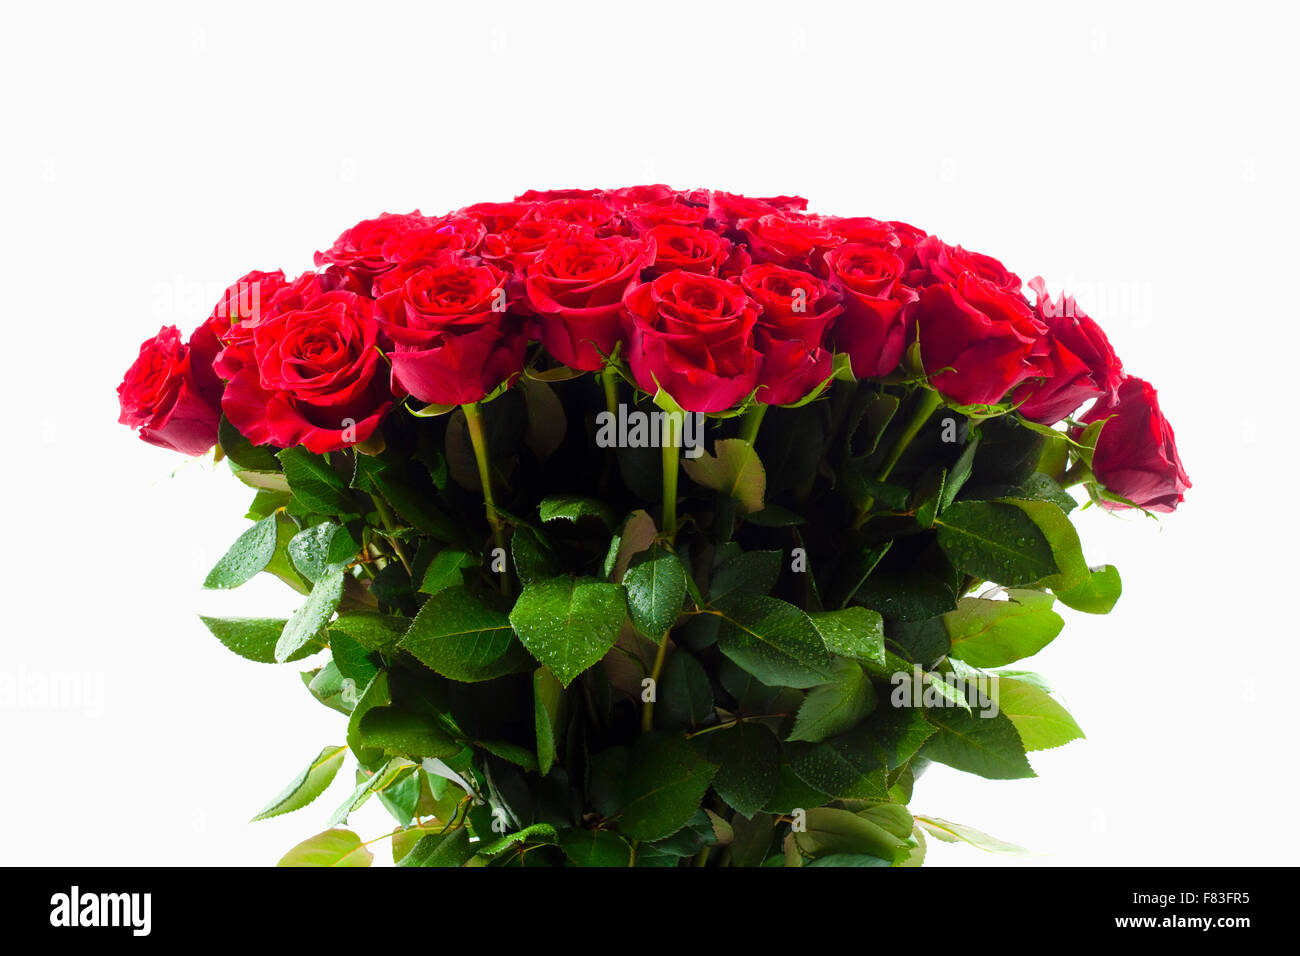 Bouquet de roses rouges - Isolated on White Photo Stock